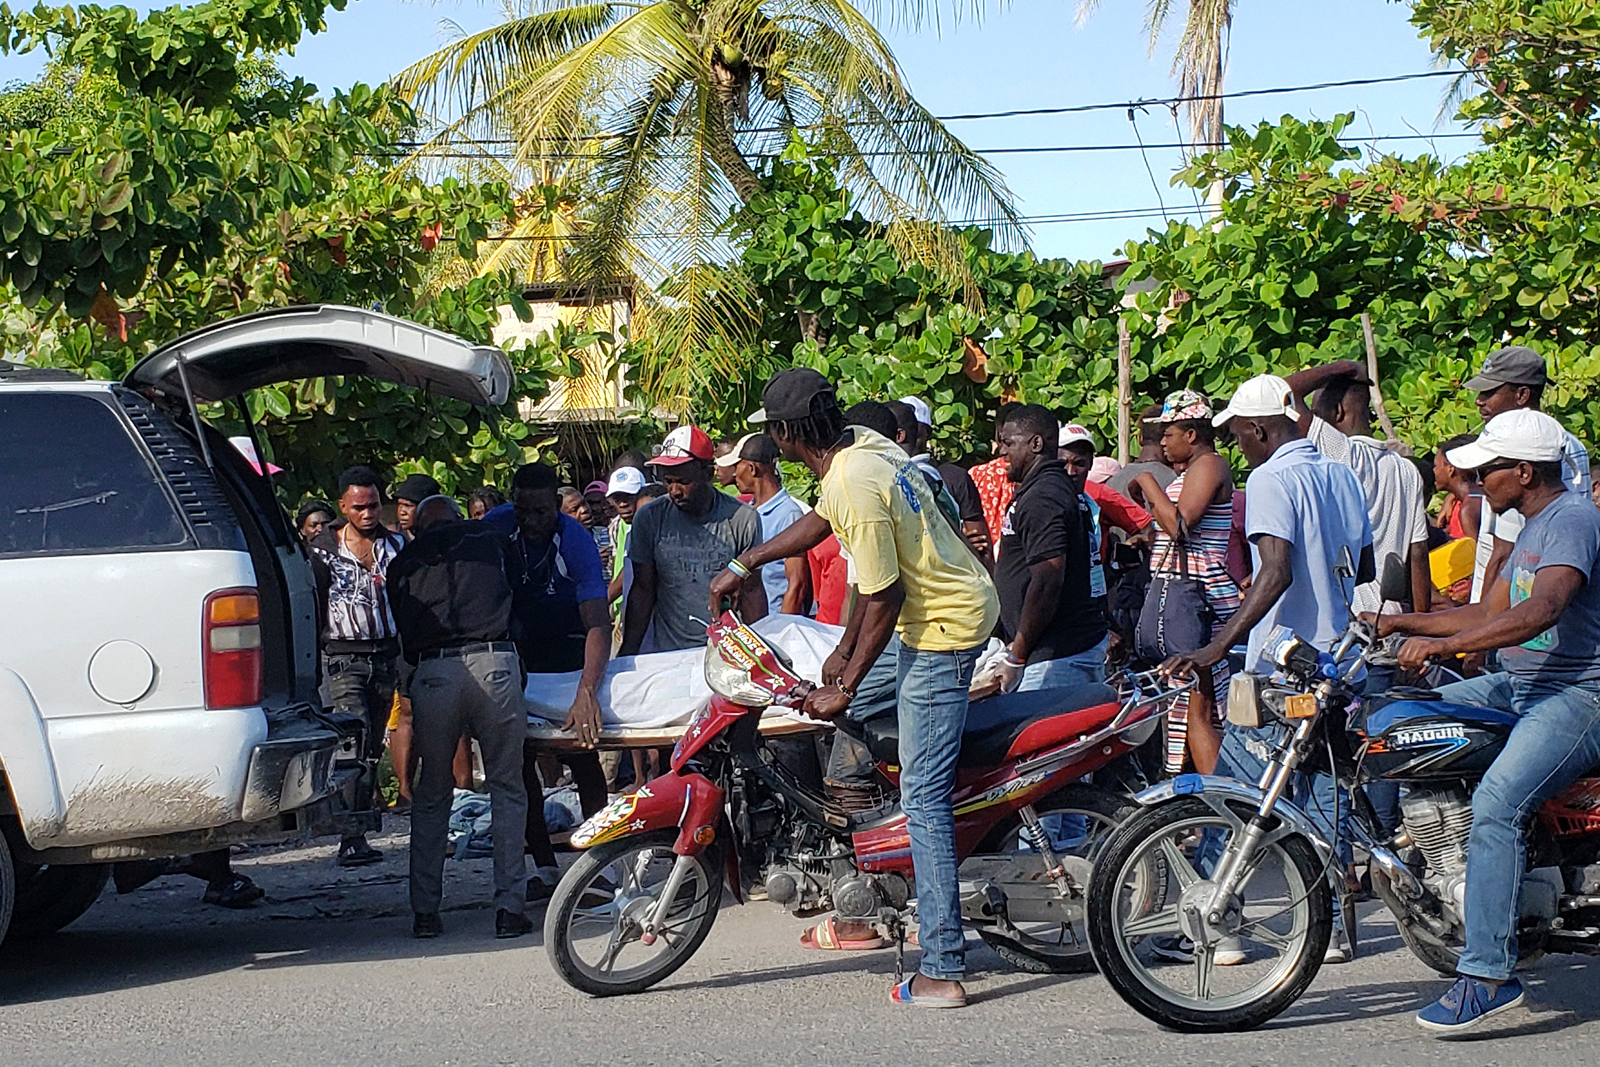 People watch an earthquake victim be placed into a vehicle in Les Cayes, Haiti, on August 14.